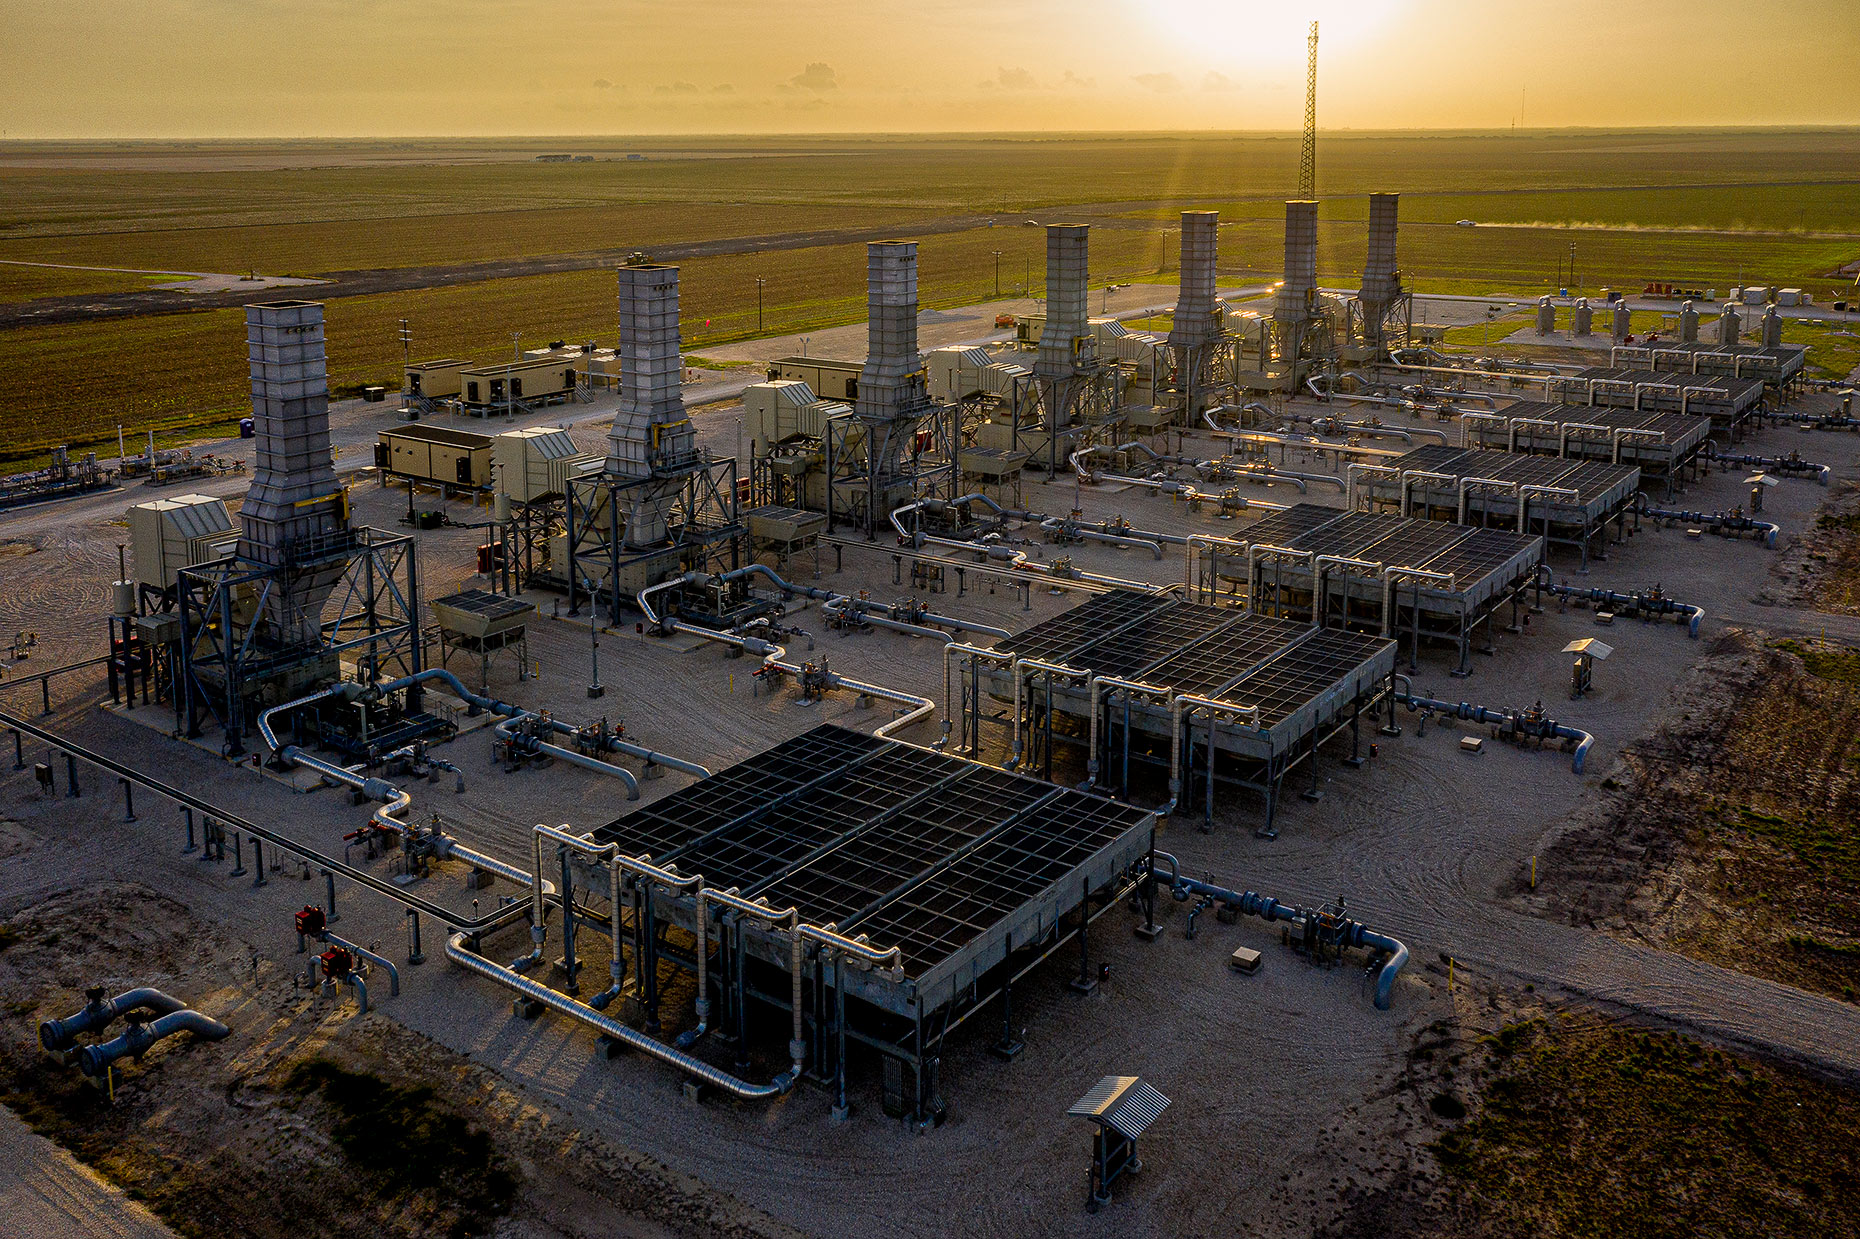 Enbridge Agua Dulce Compressor Station, South of Robstown, Texas